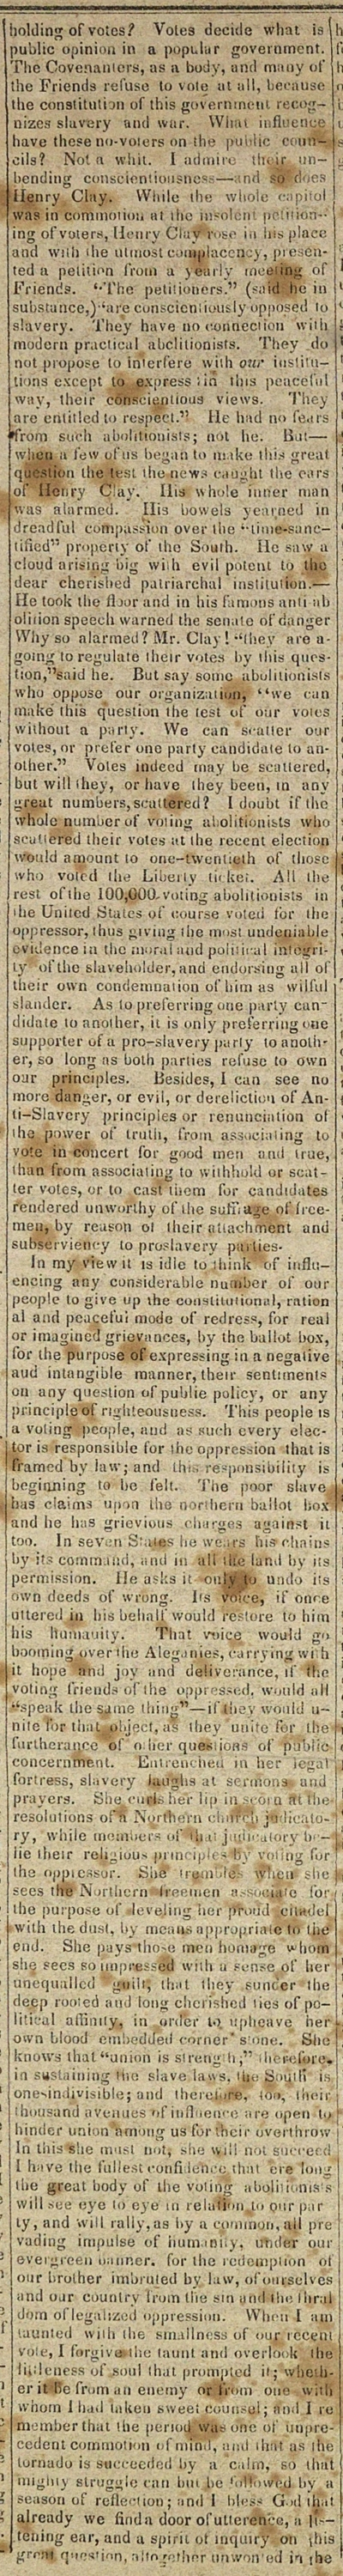 From the Union Herald: The advocates of an independent abolition political organization... image